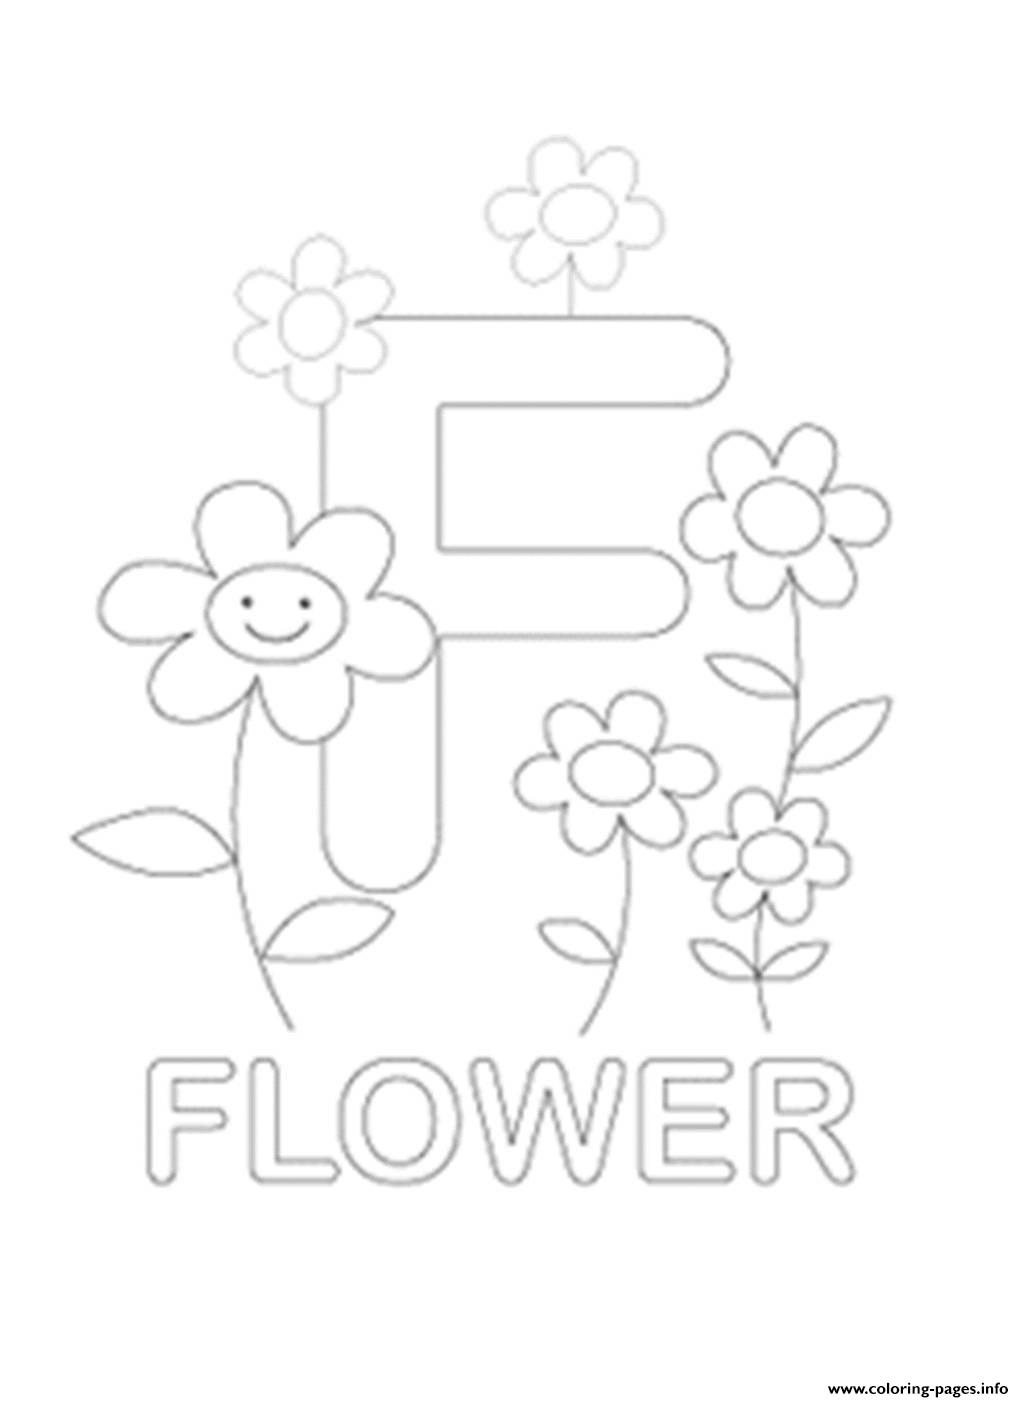 Flower Worksheet Kindergarten